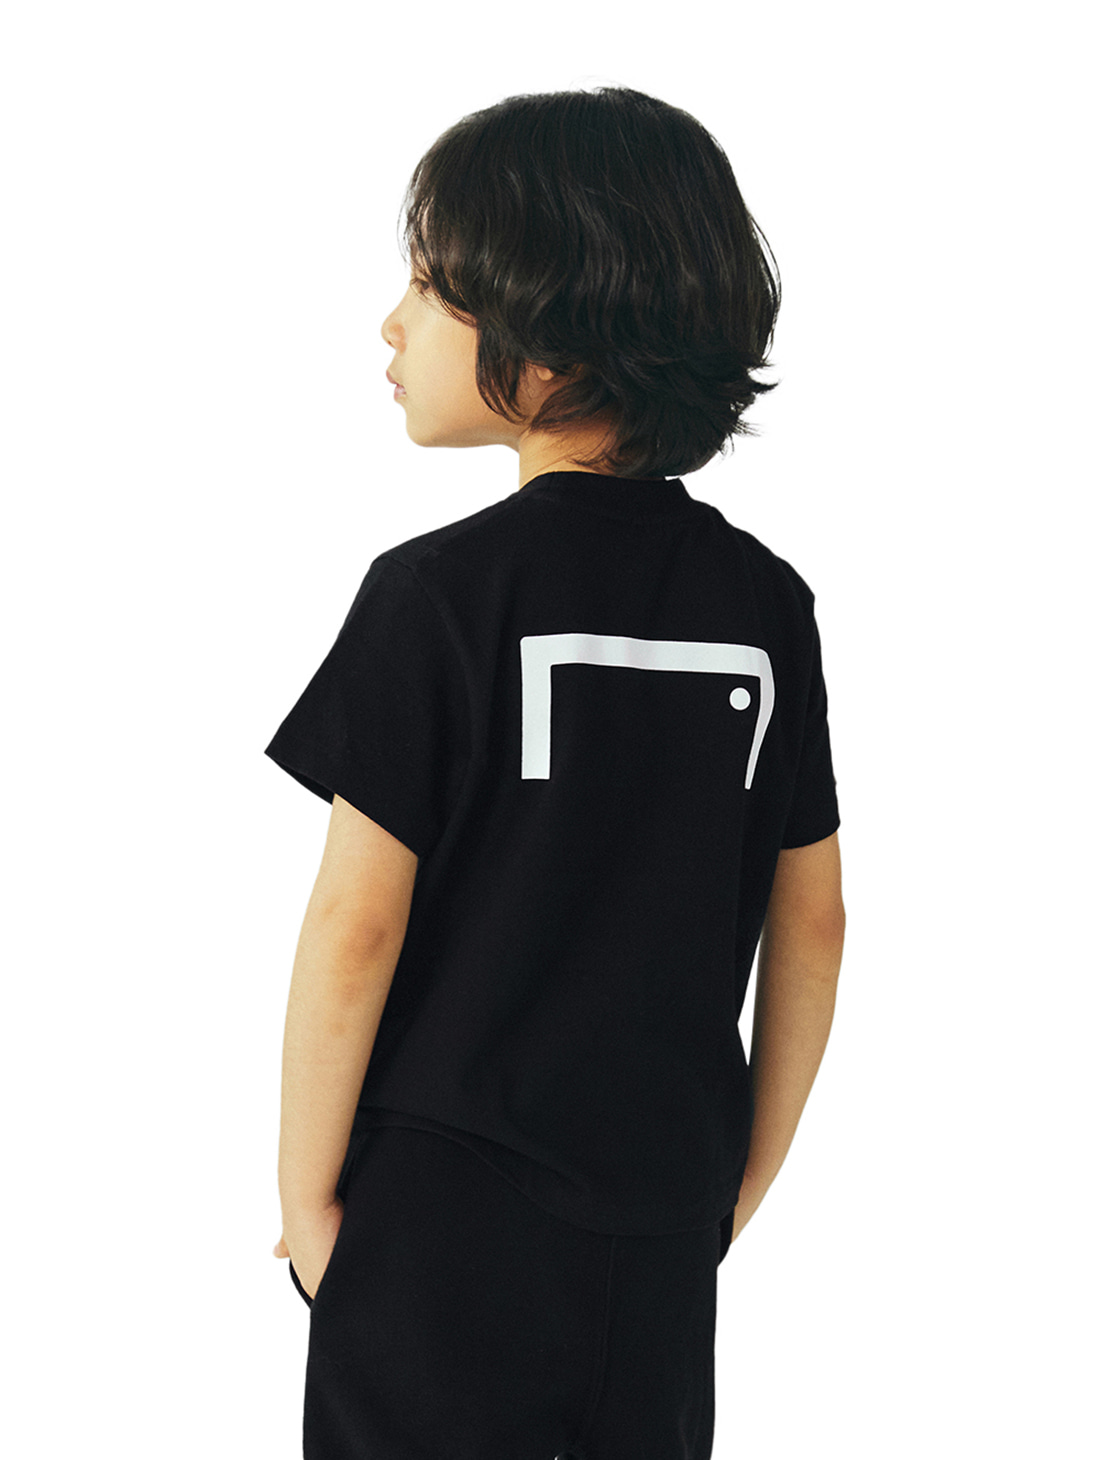 GOALSTUDIO (KIDS) TEXT LOGO TEE - BLACK